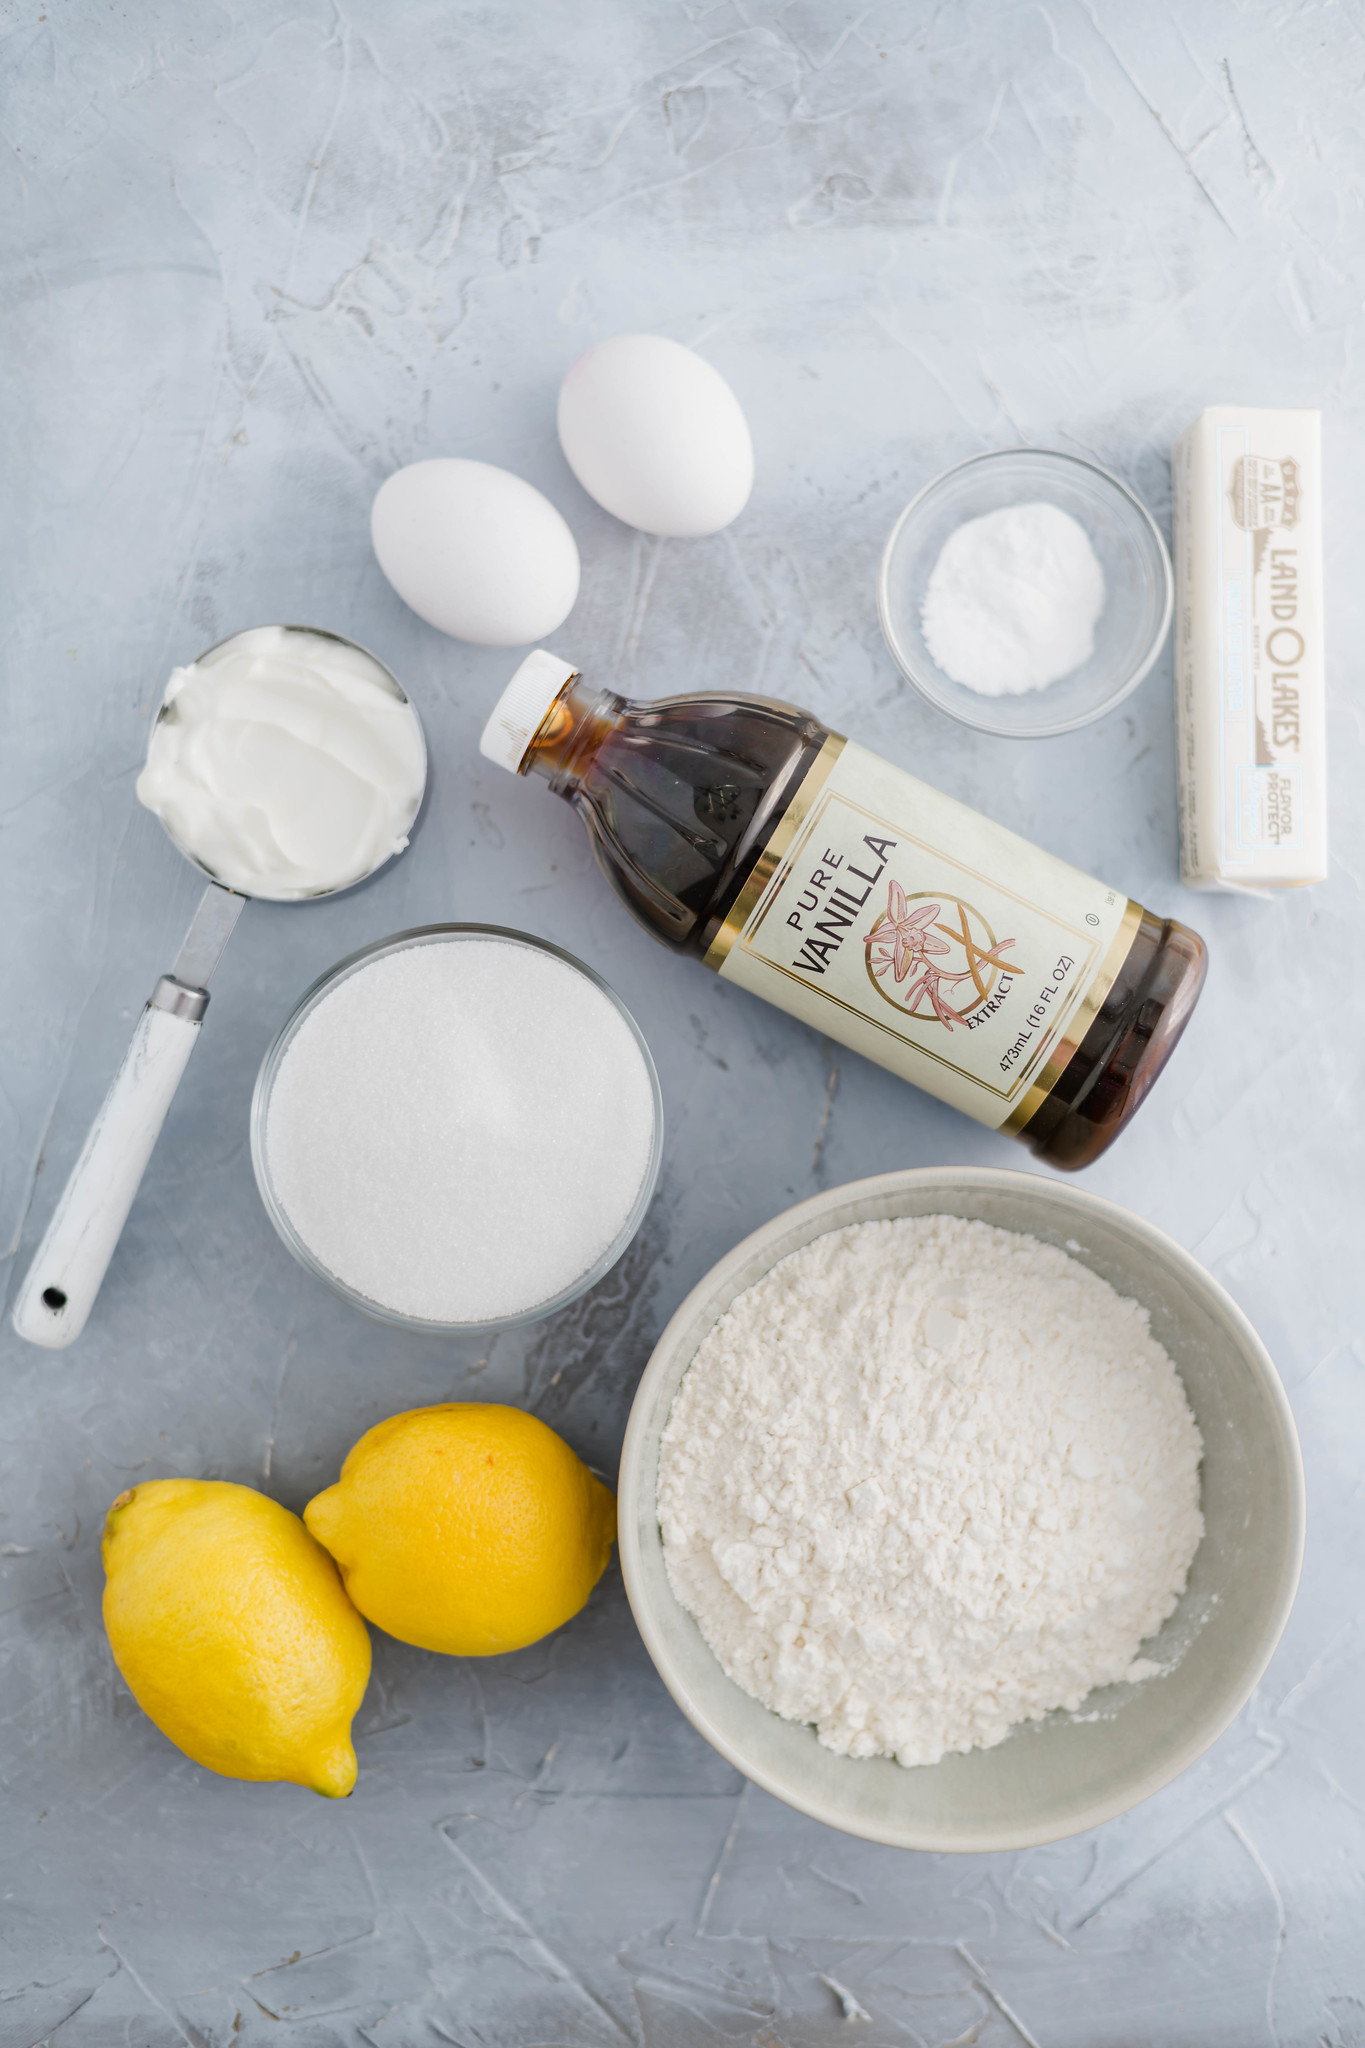 Required ingredients for starbucks lemon loaf arranged on a gray backdrop.